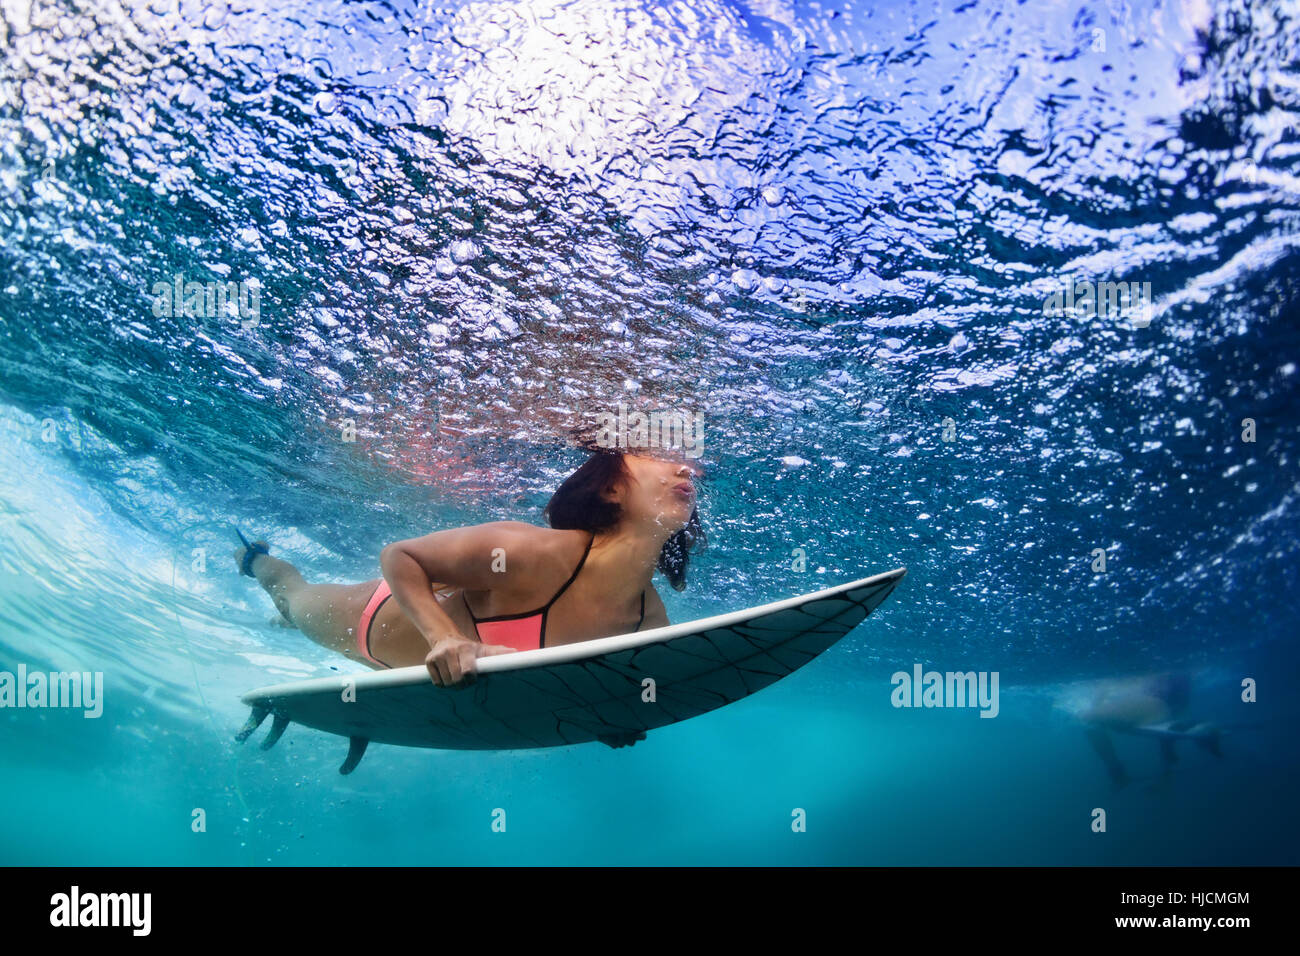 Active girl in action. Surfer woman with surf board dive underwater under breaking ocean wave Water sport, extreme - Stock Image